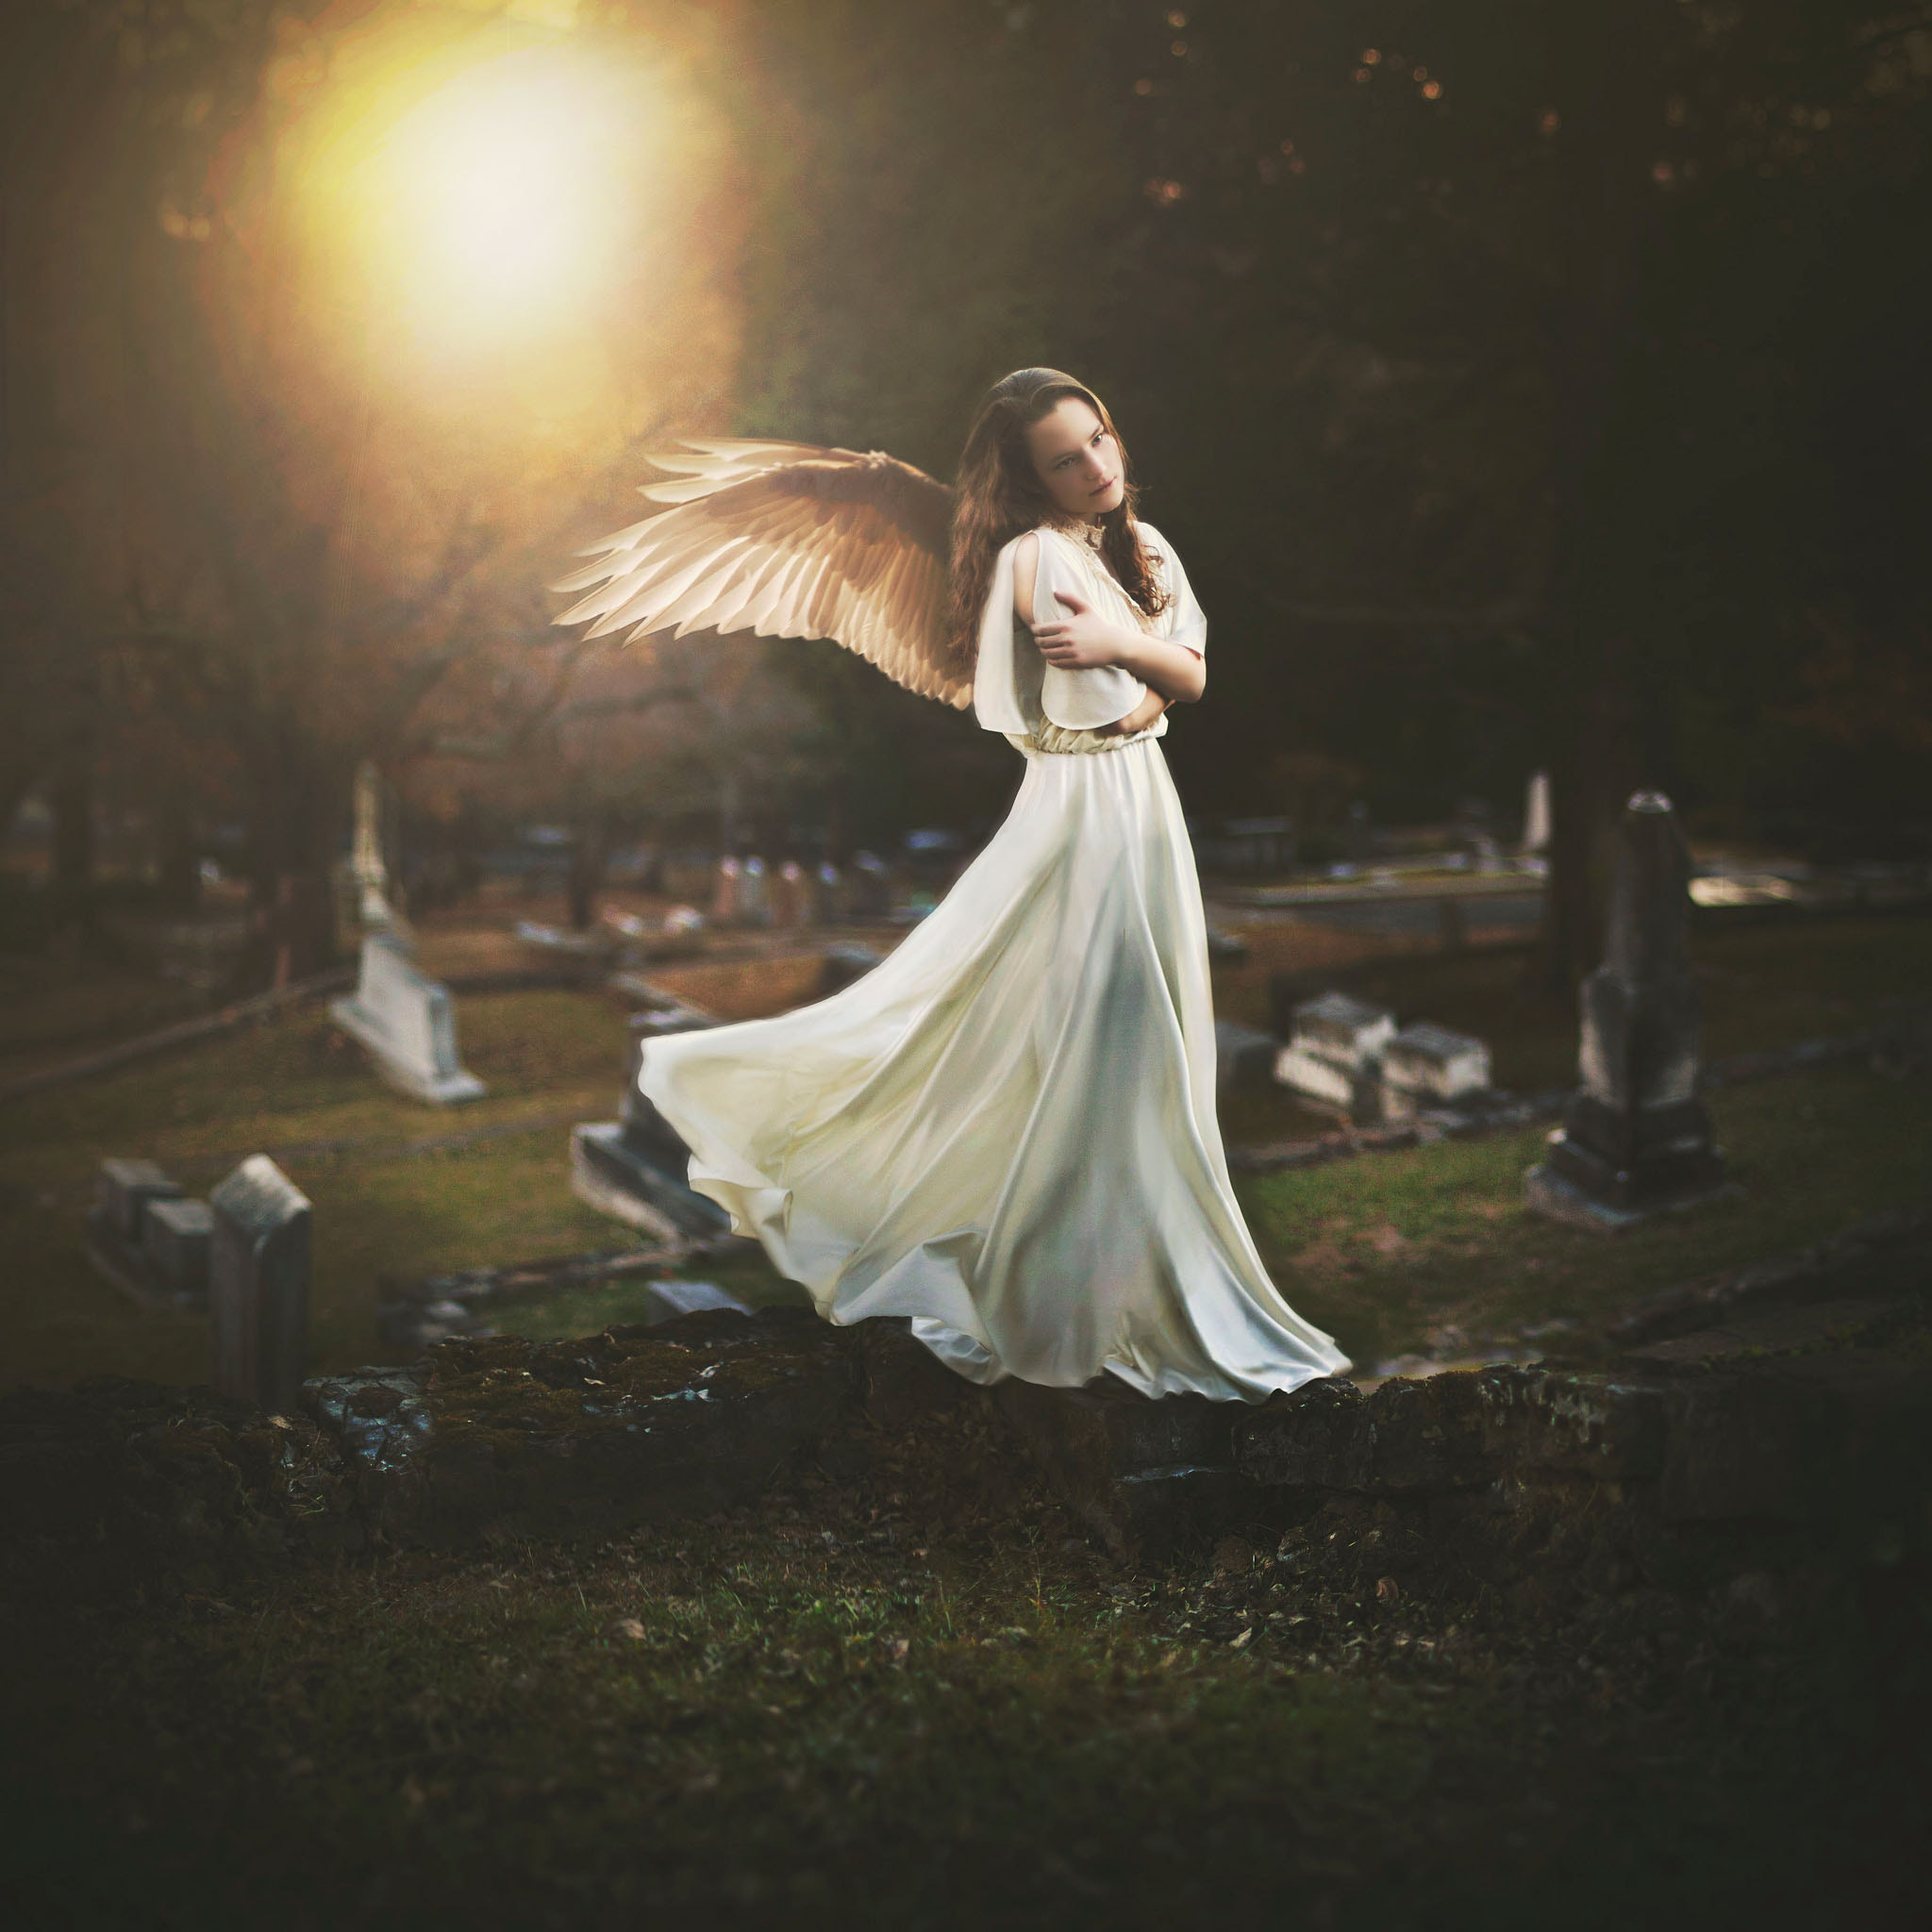 Photograph Collector of Lost Souls by Shelby Robinson on 500px